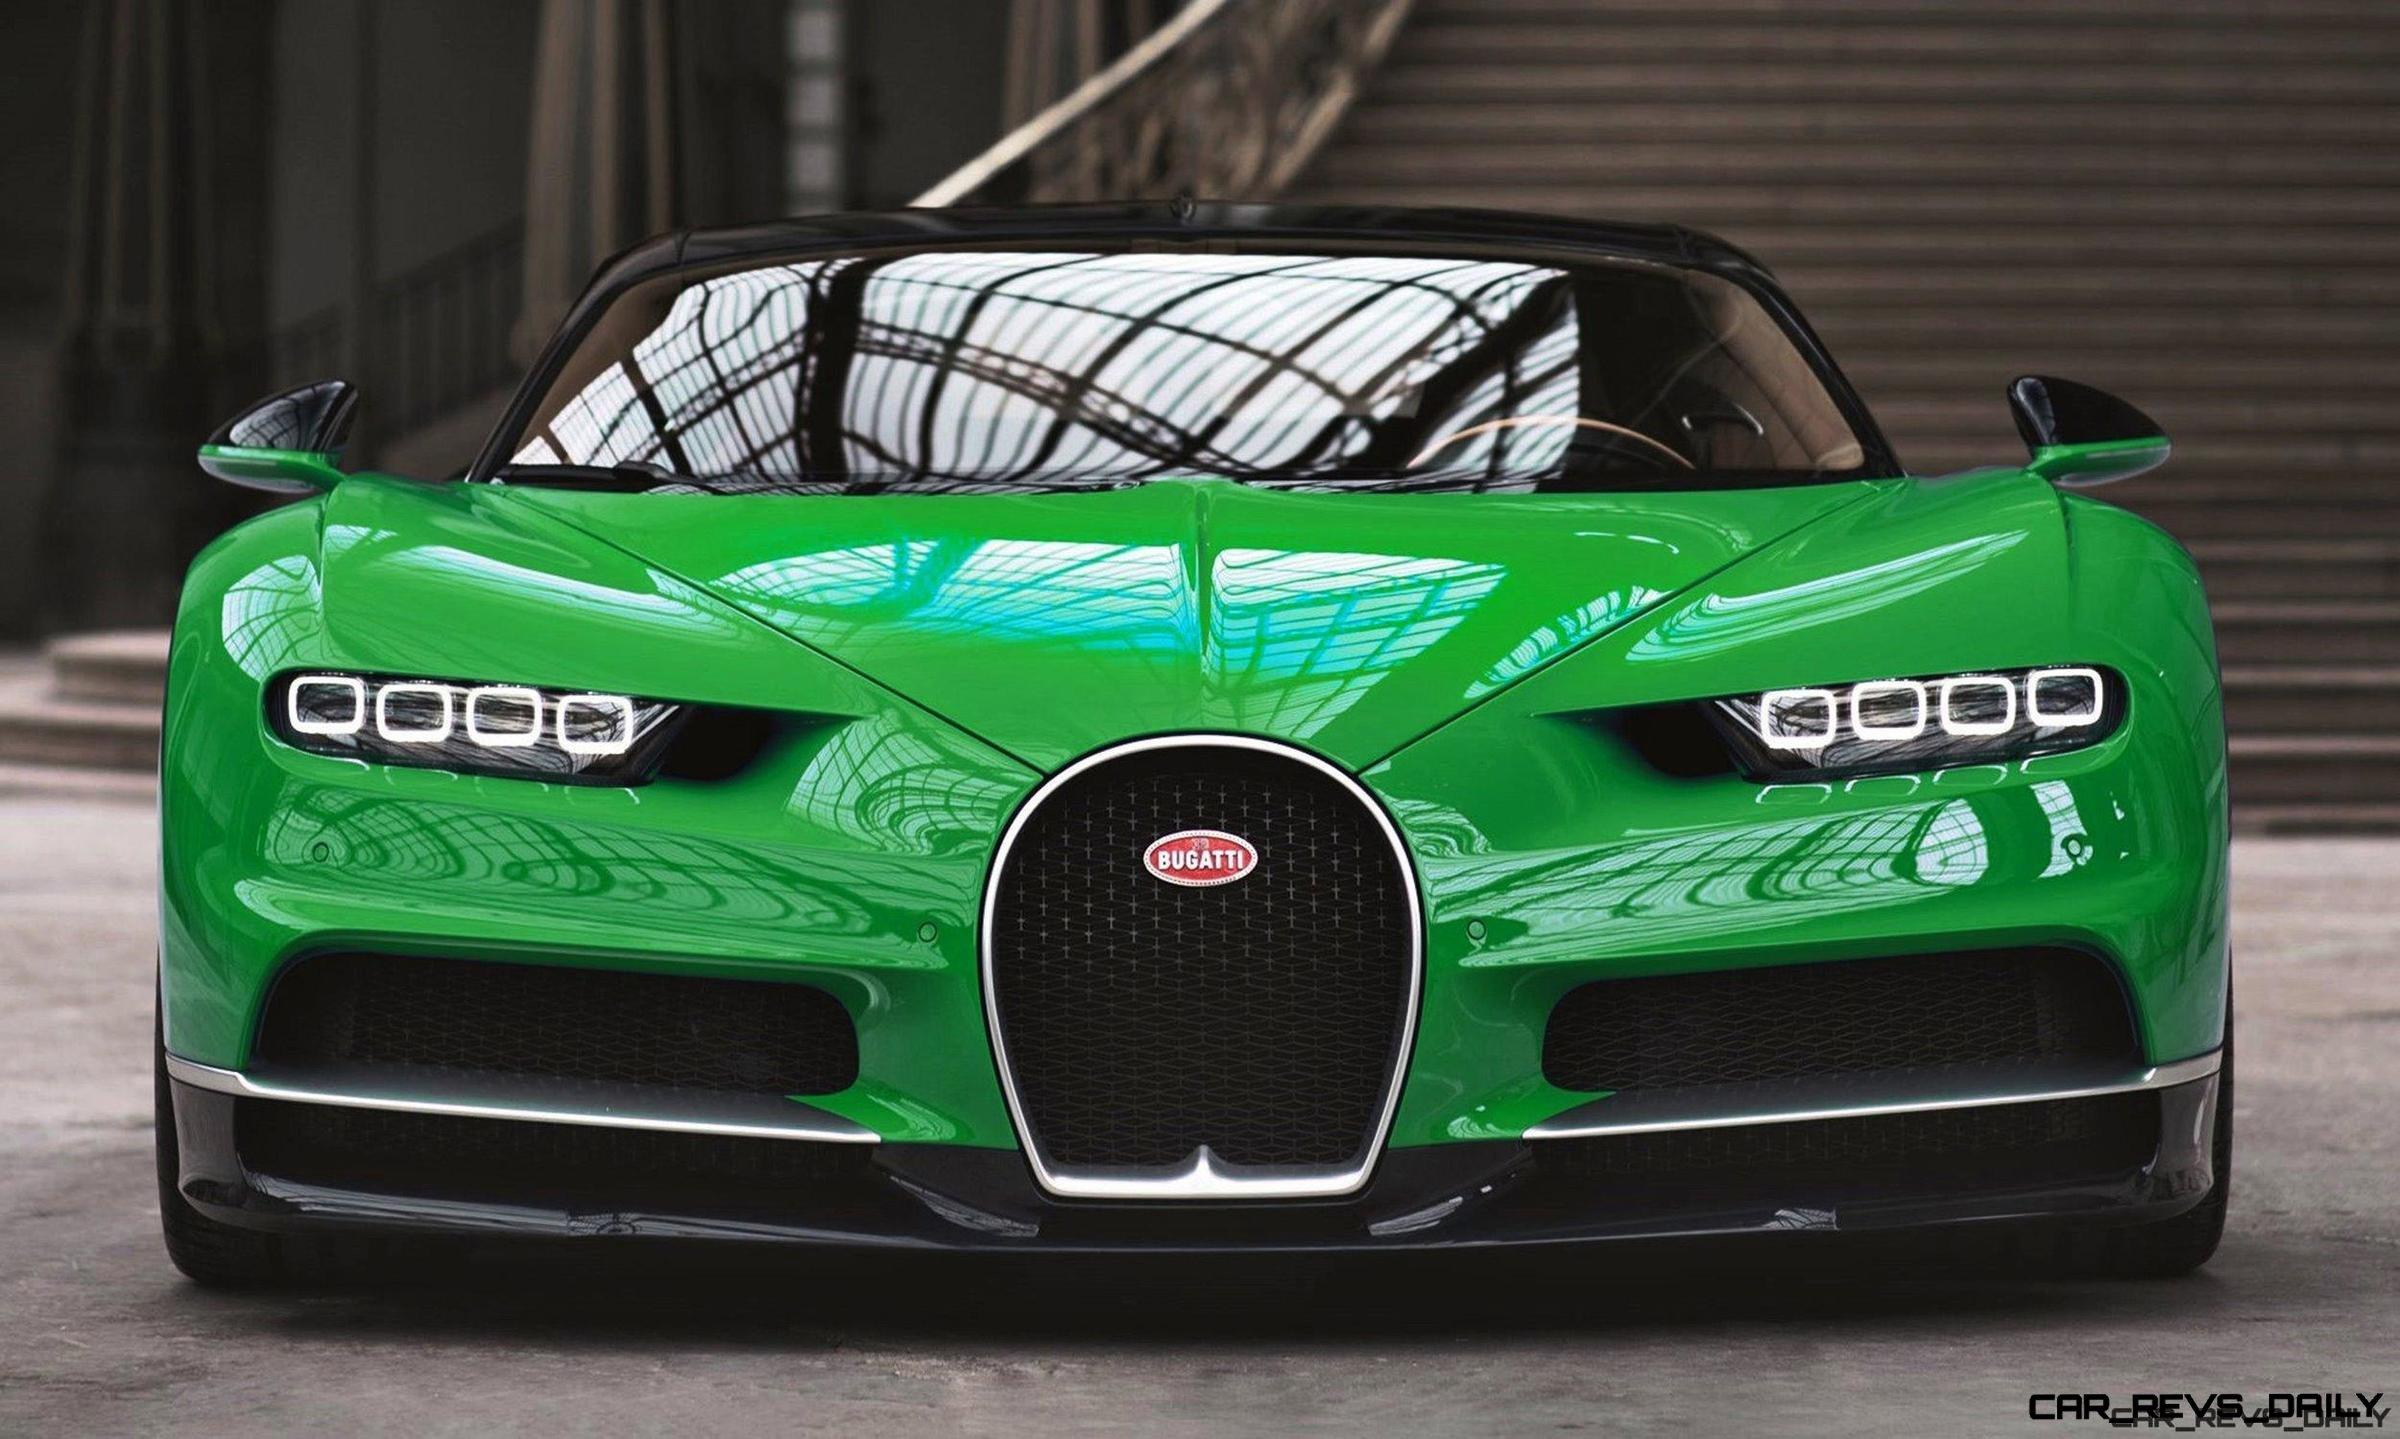 2017 Bugatti Chiron Colors Visualizer 50 Shades Of 300mph Boss